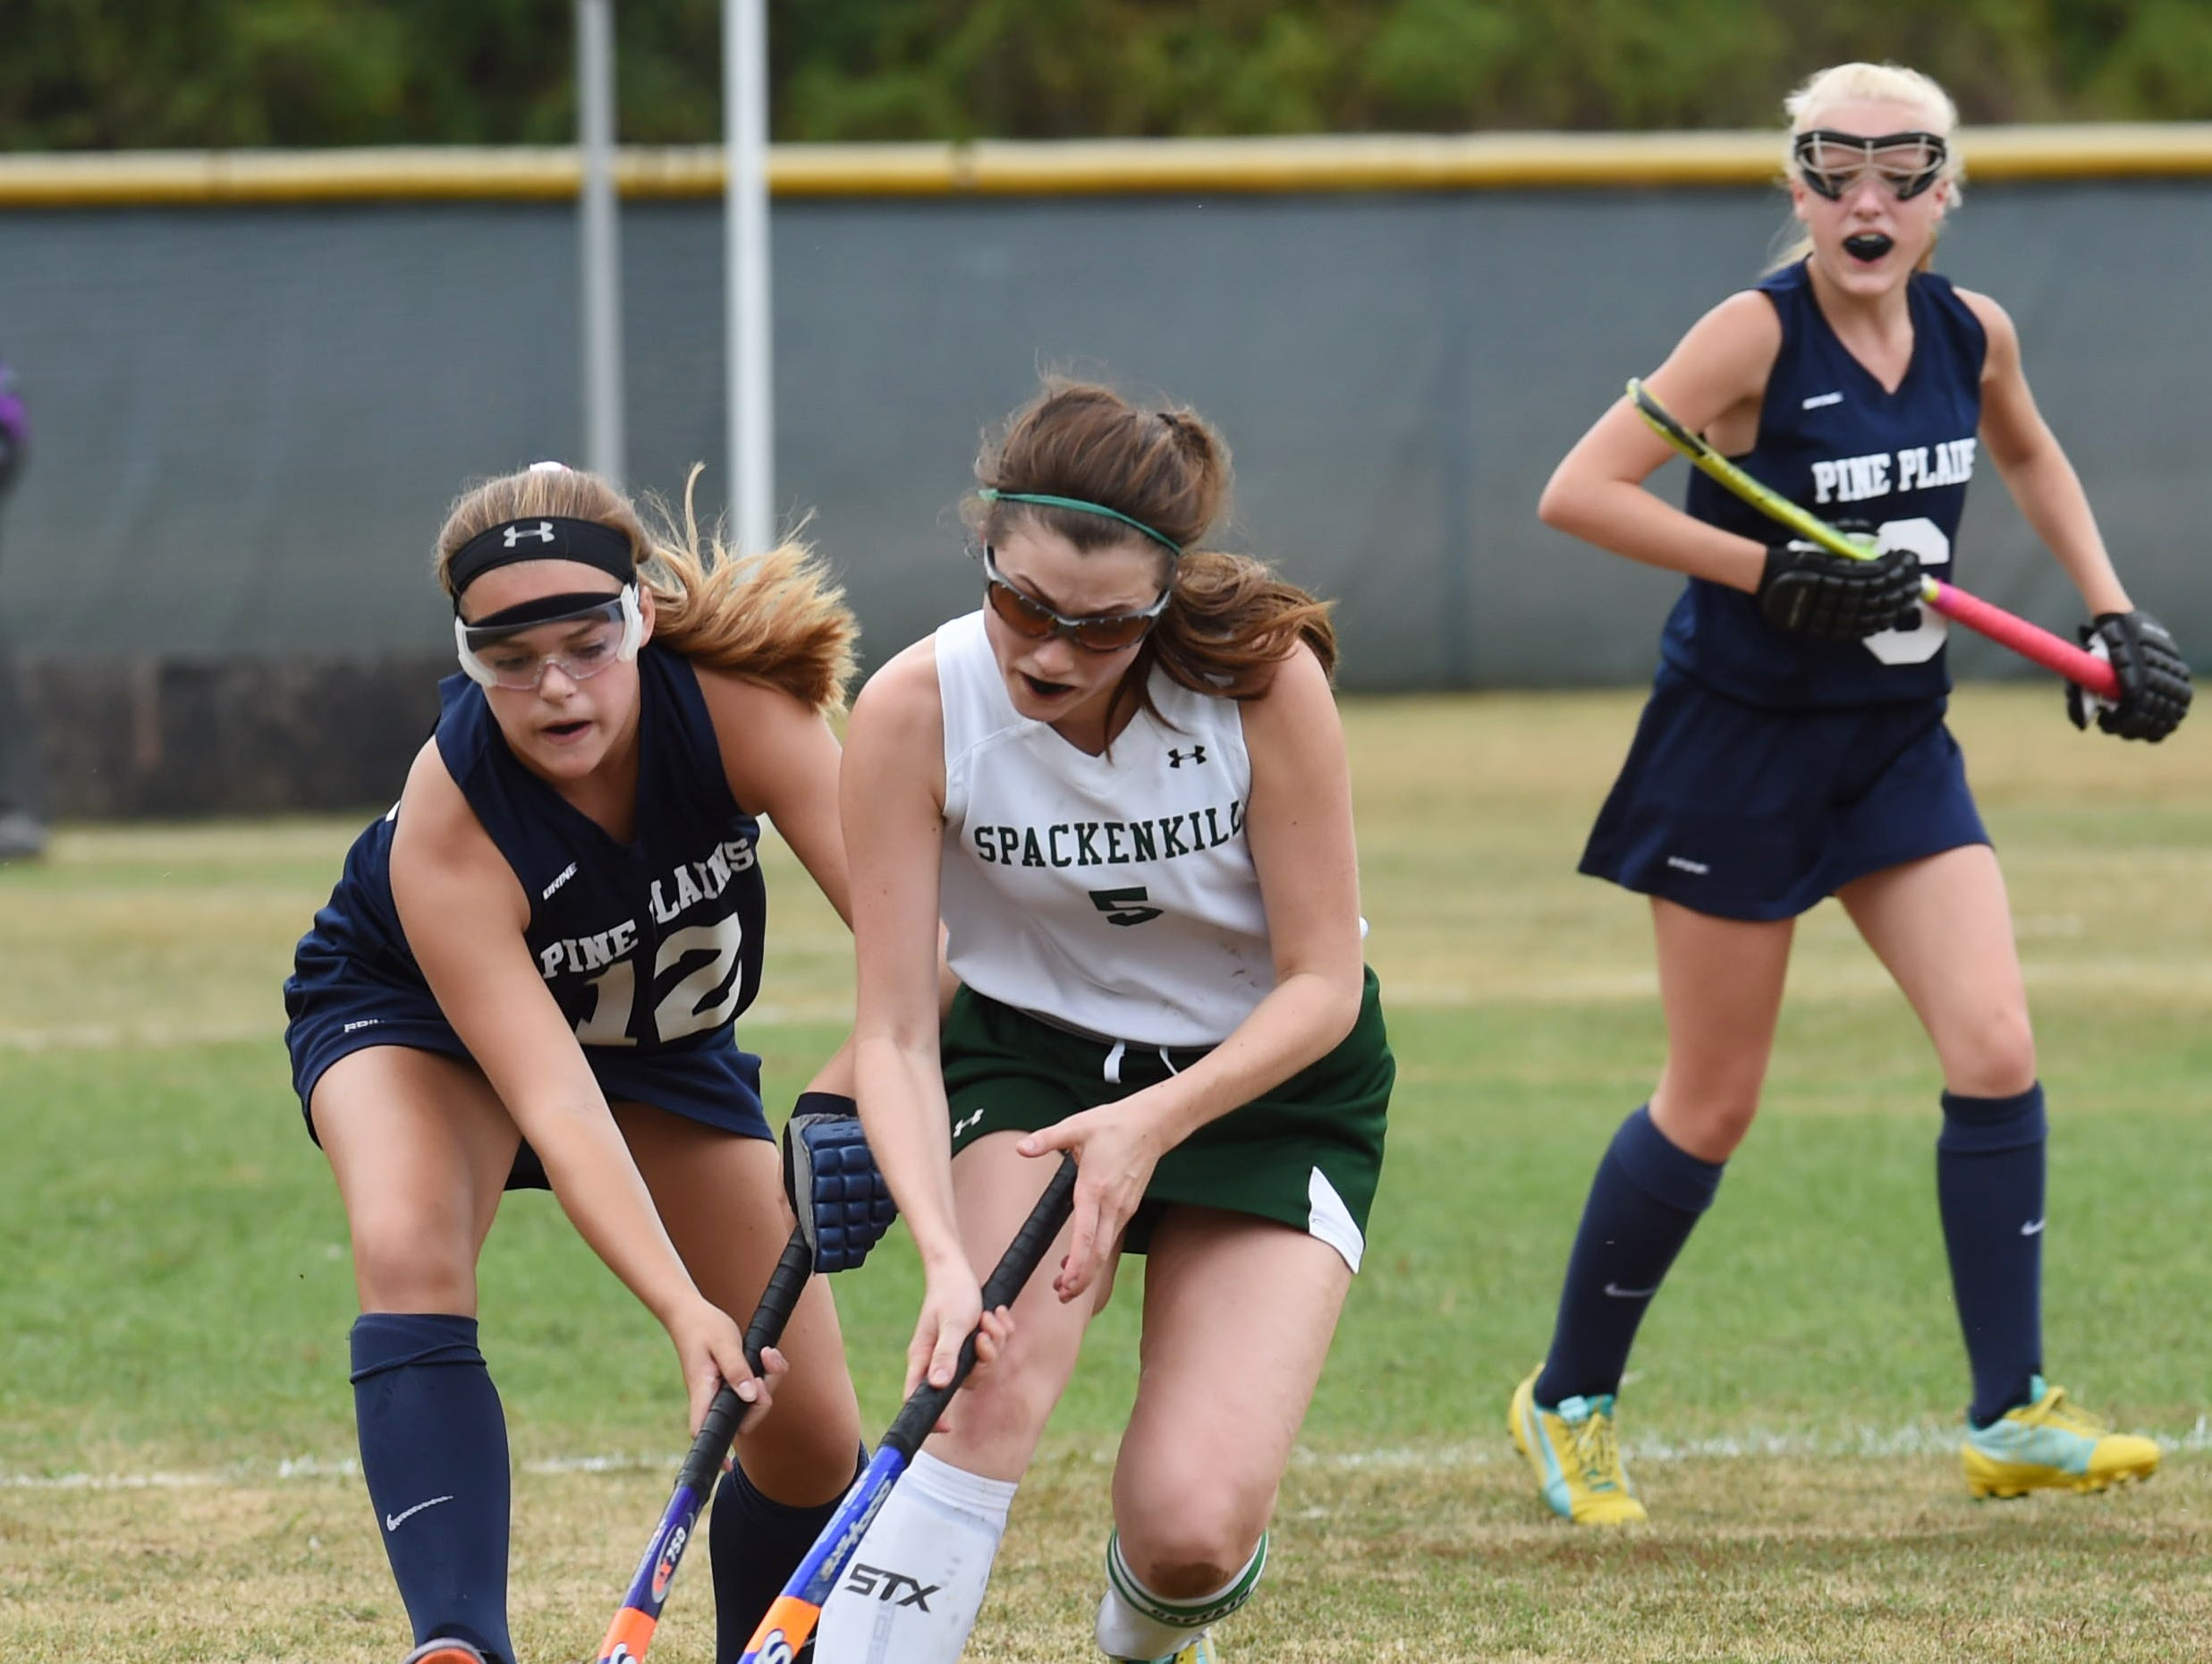 Spackenkill's Sarah Bowen, center, tries to keep the ball away from Pine Plains' Sadie Norman, left, during Monday's game.